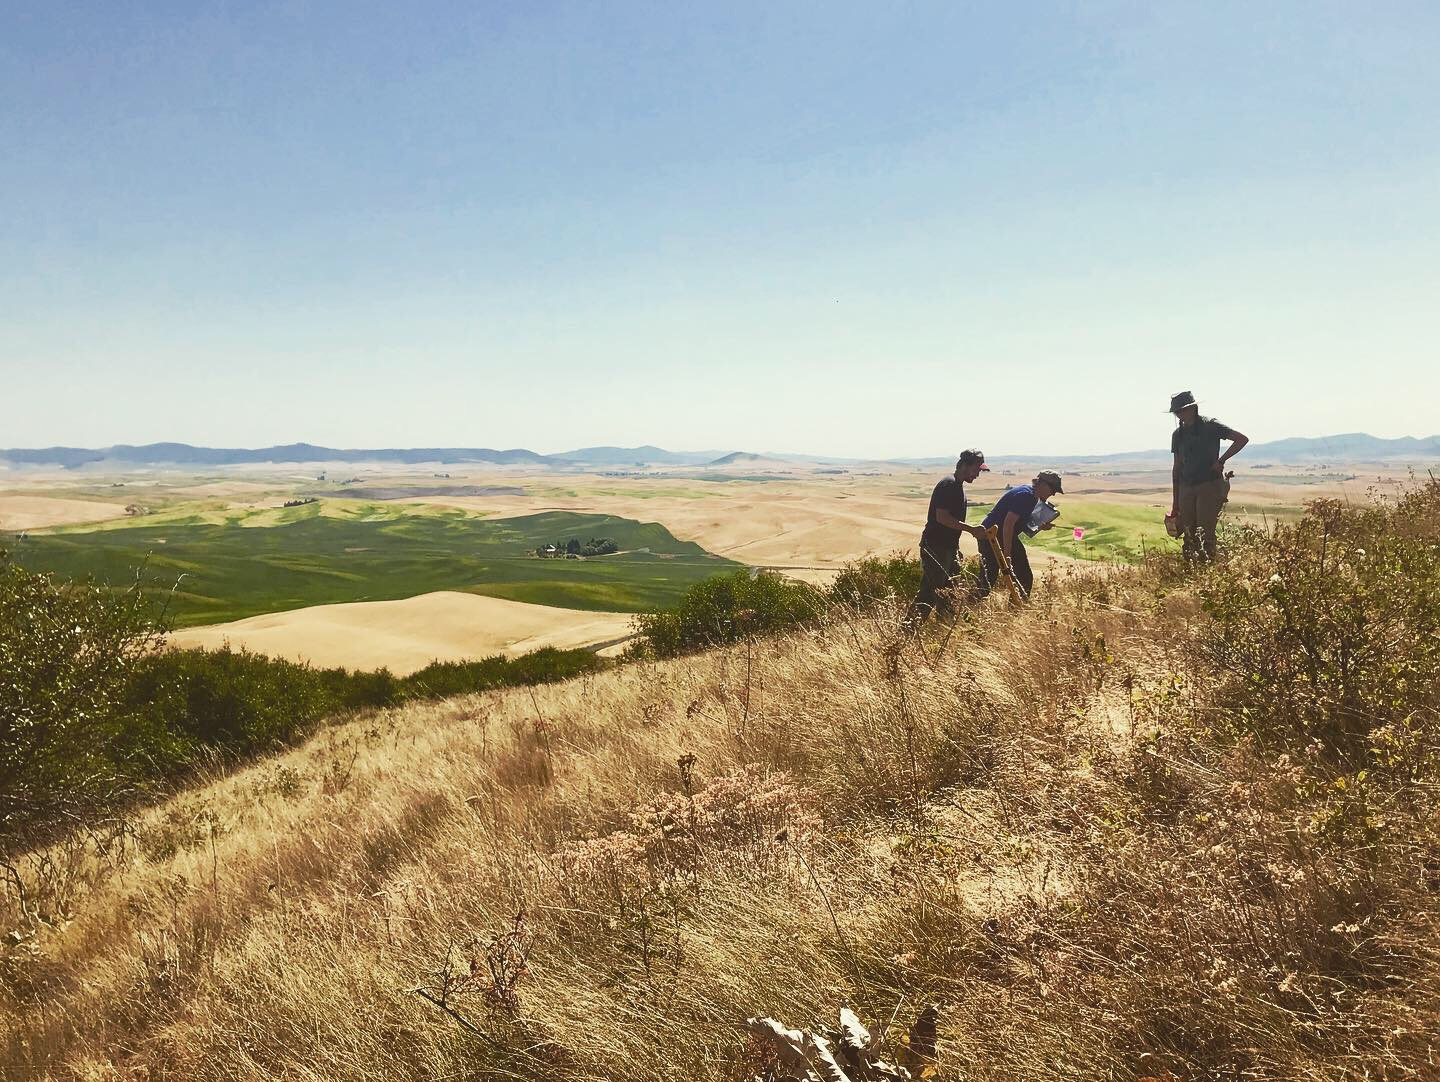 Palouse CD staff surveys Palouse Prairie remnants on one of the last remaining intact prairies, Steptoe Butte.